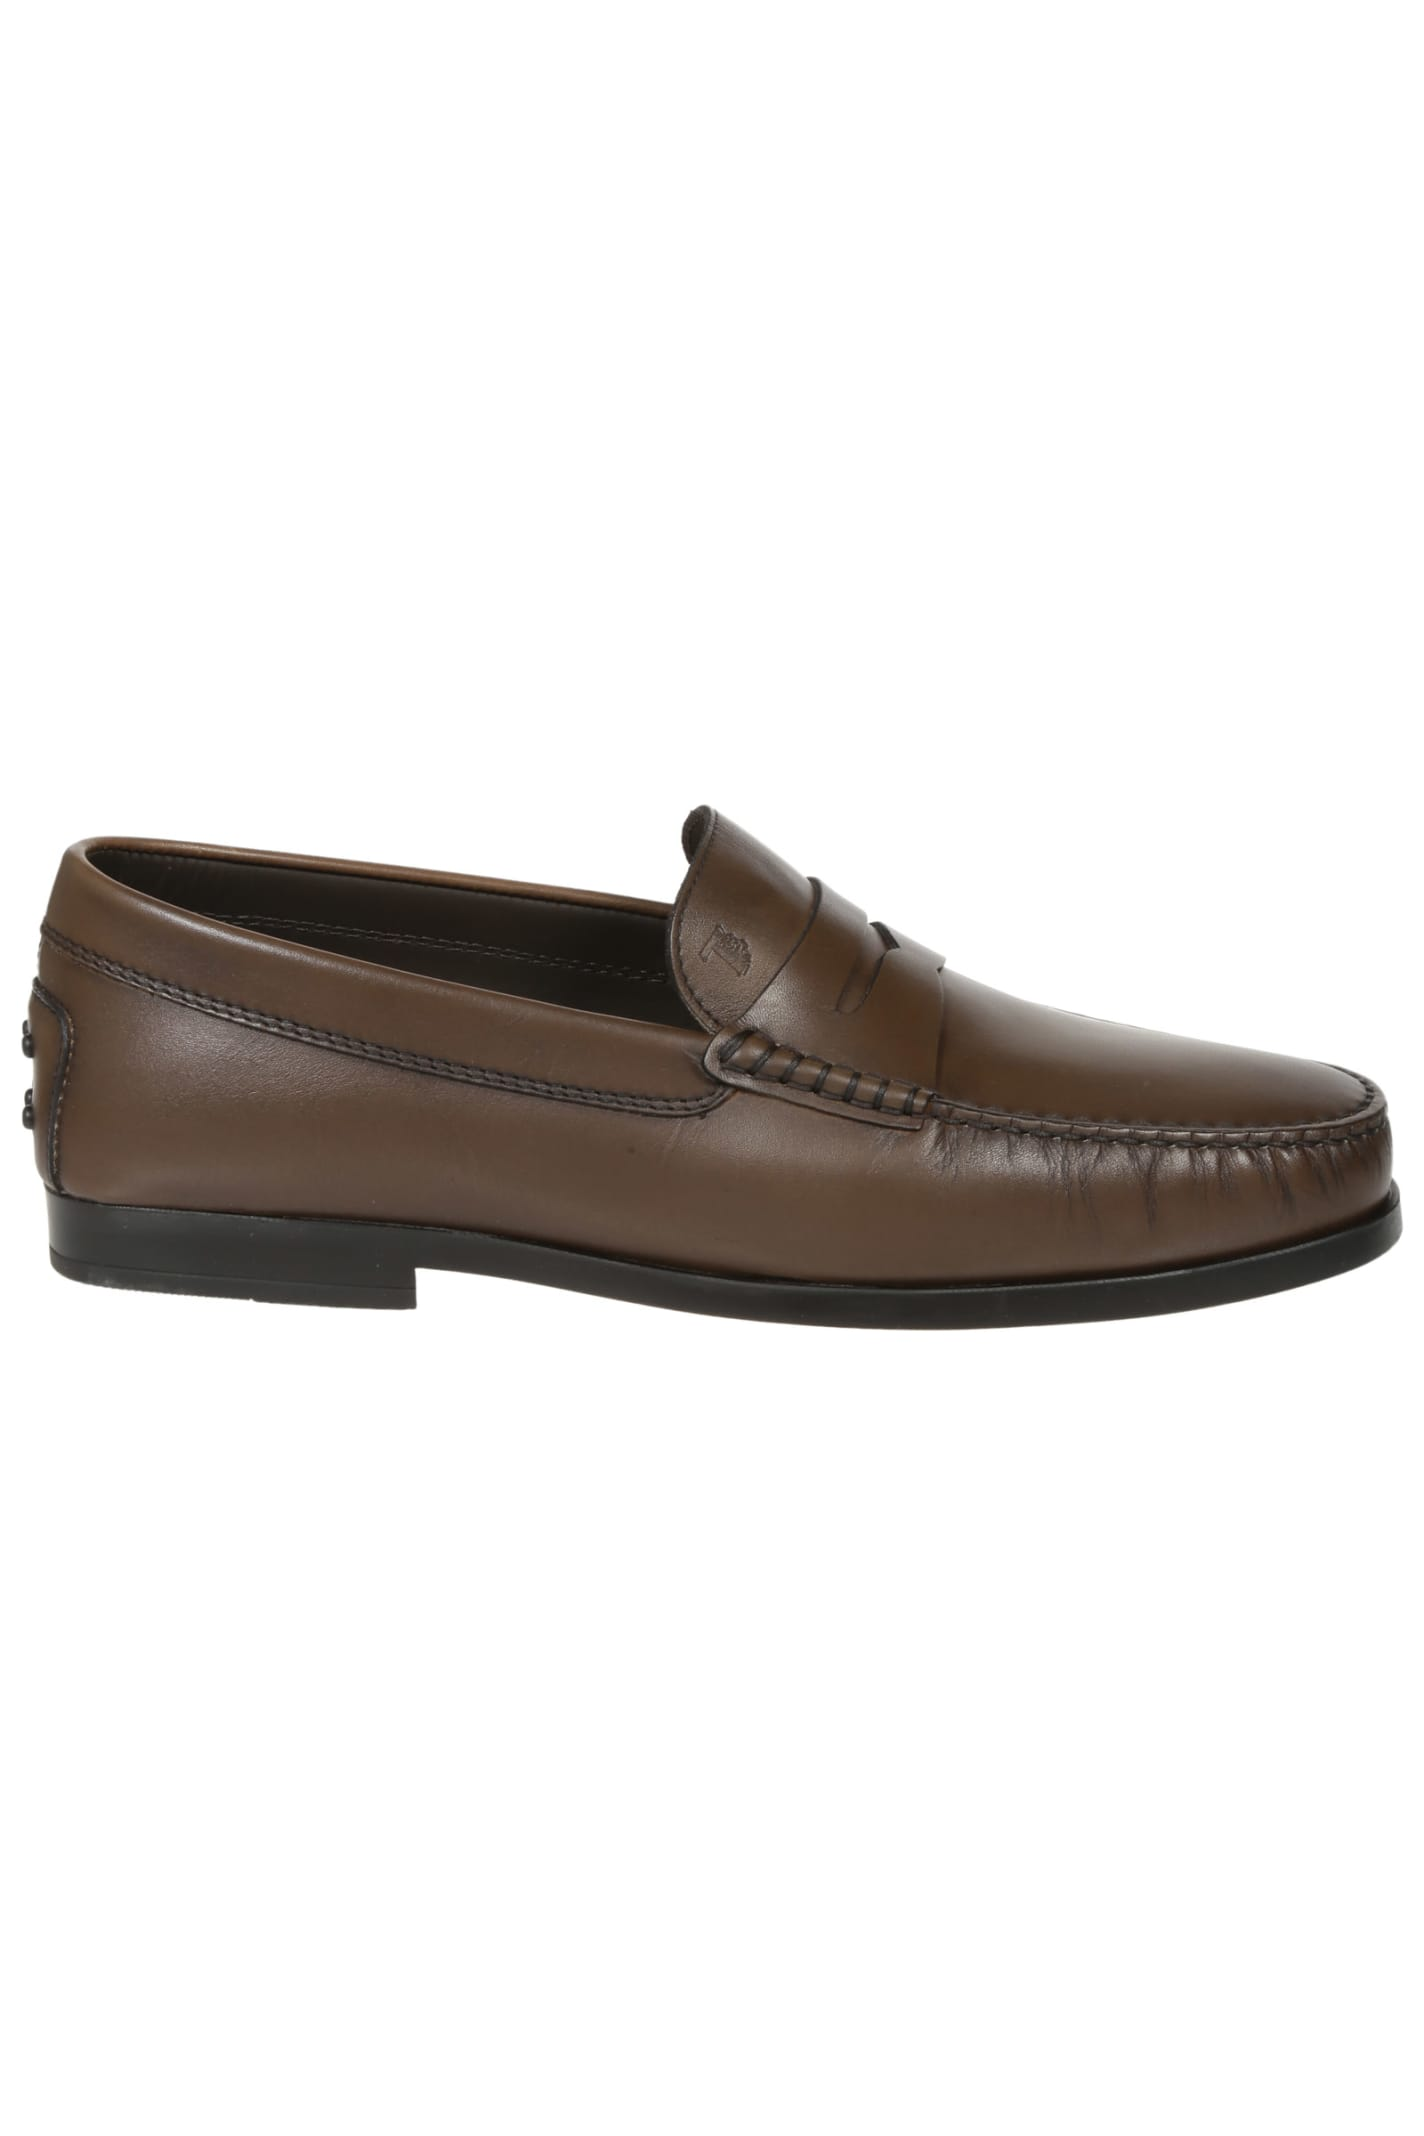 Tods Logo Stamp Loafers